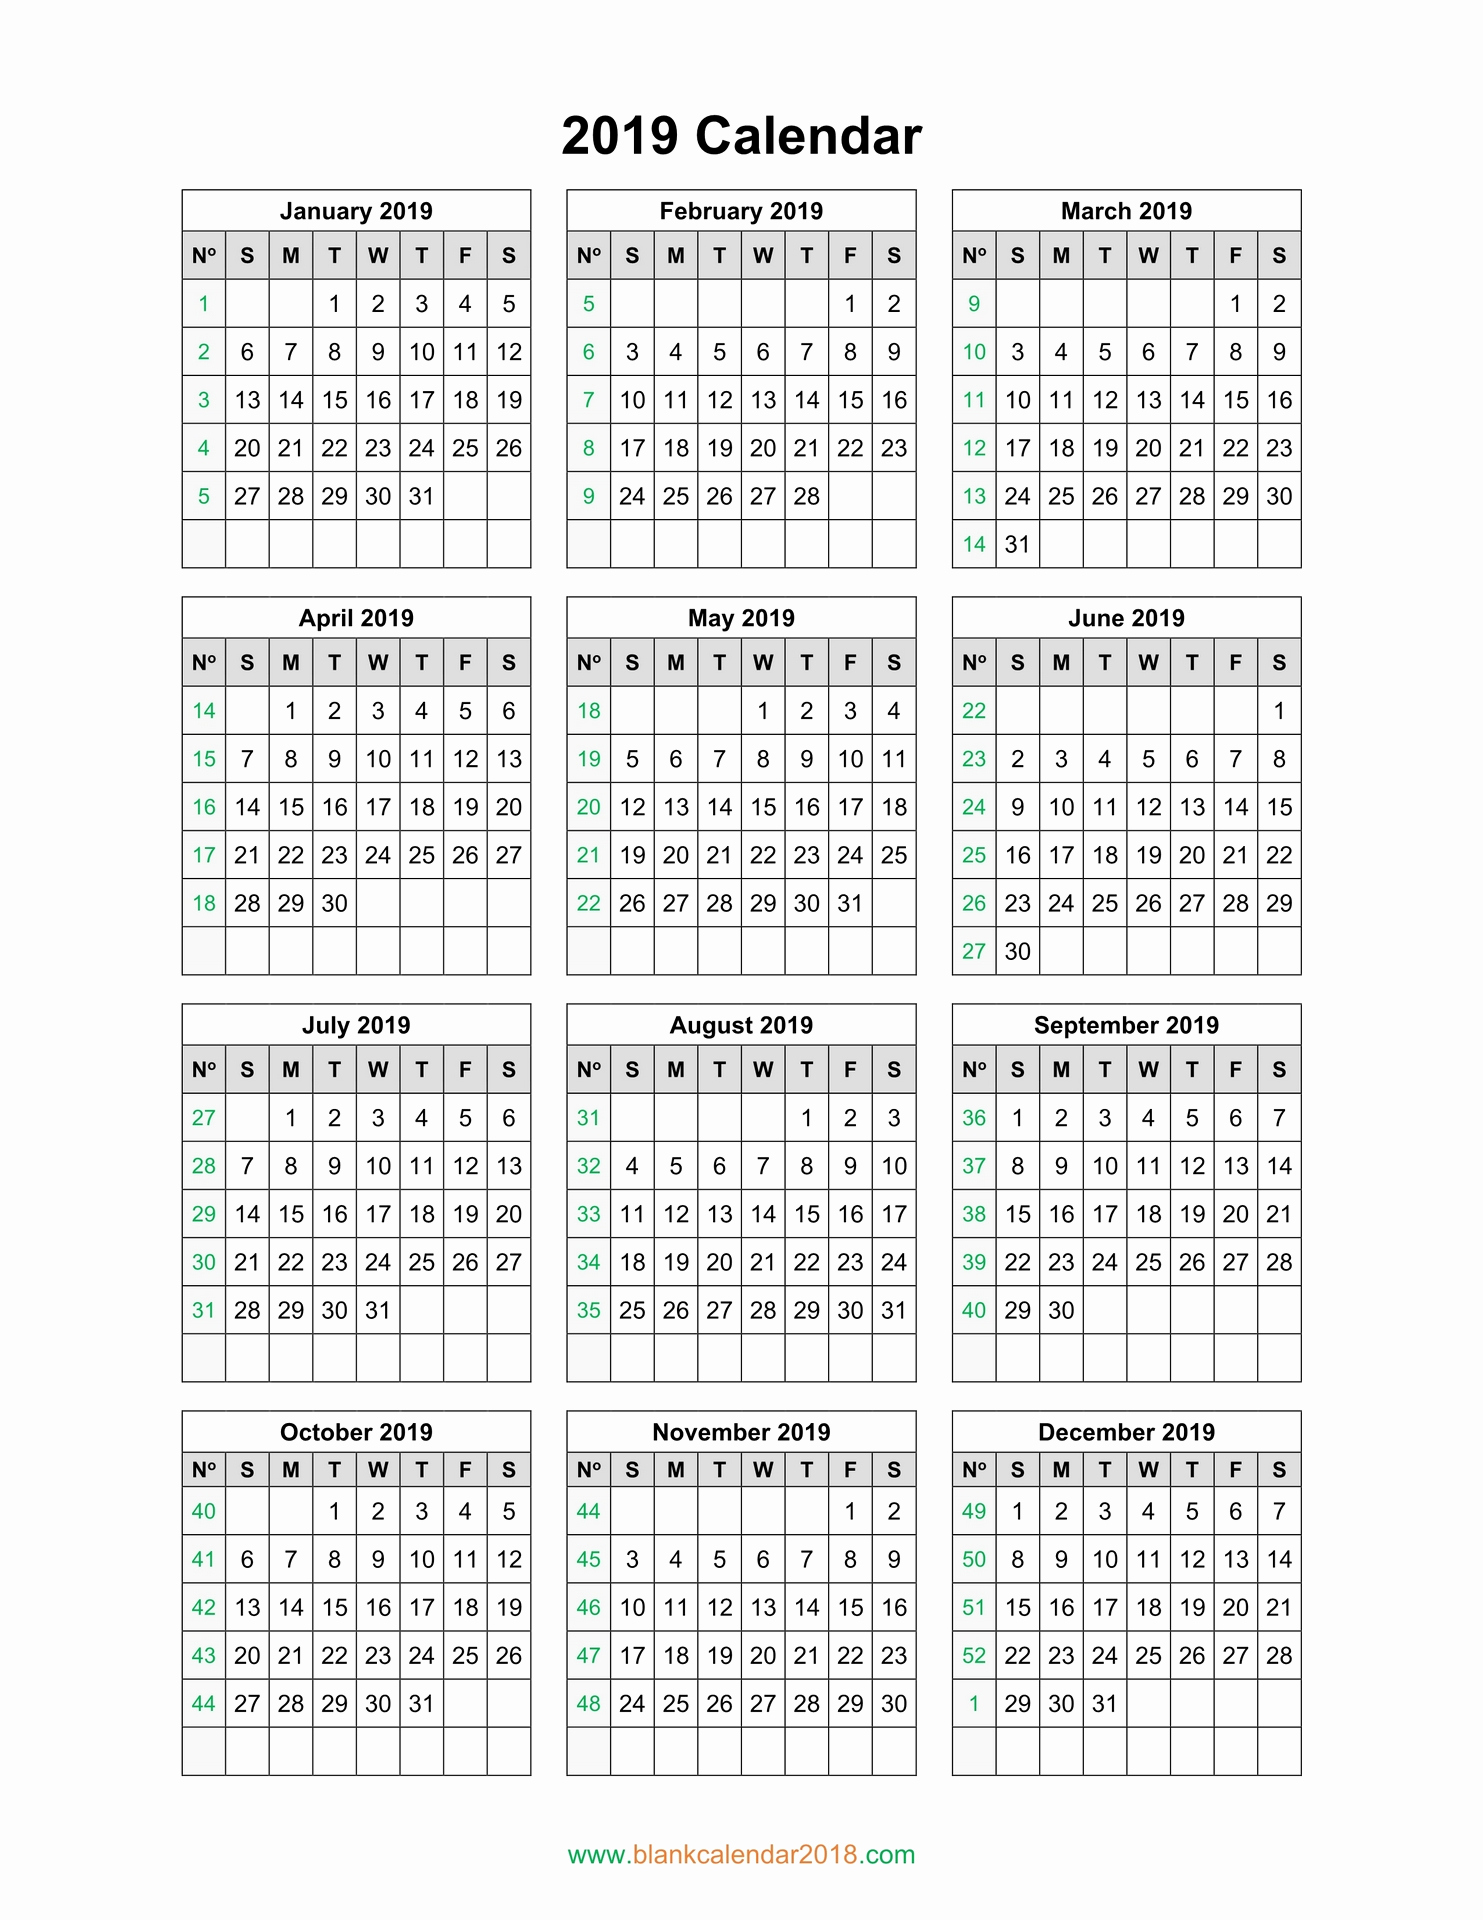 2019 Calendar Template Word New Blank Calendar 2019